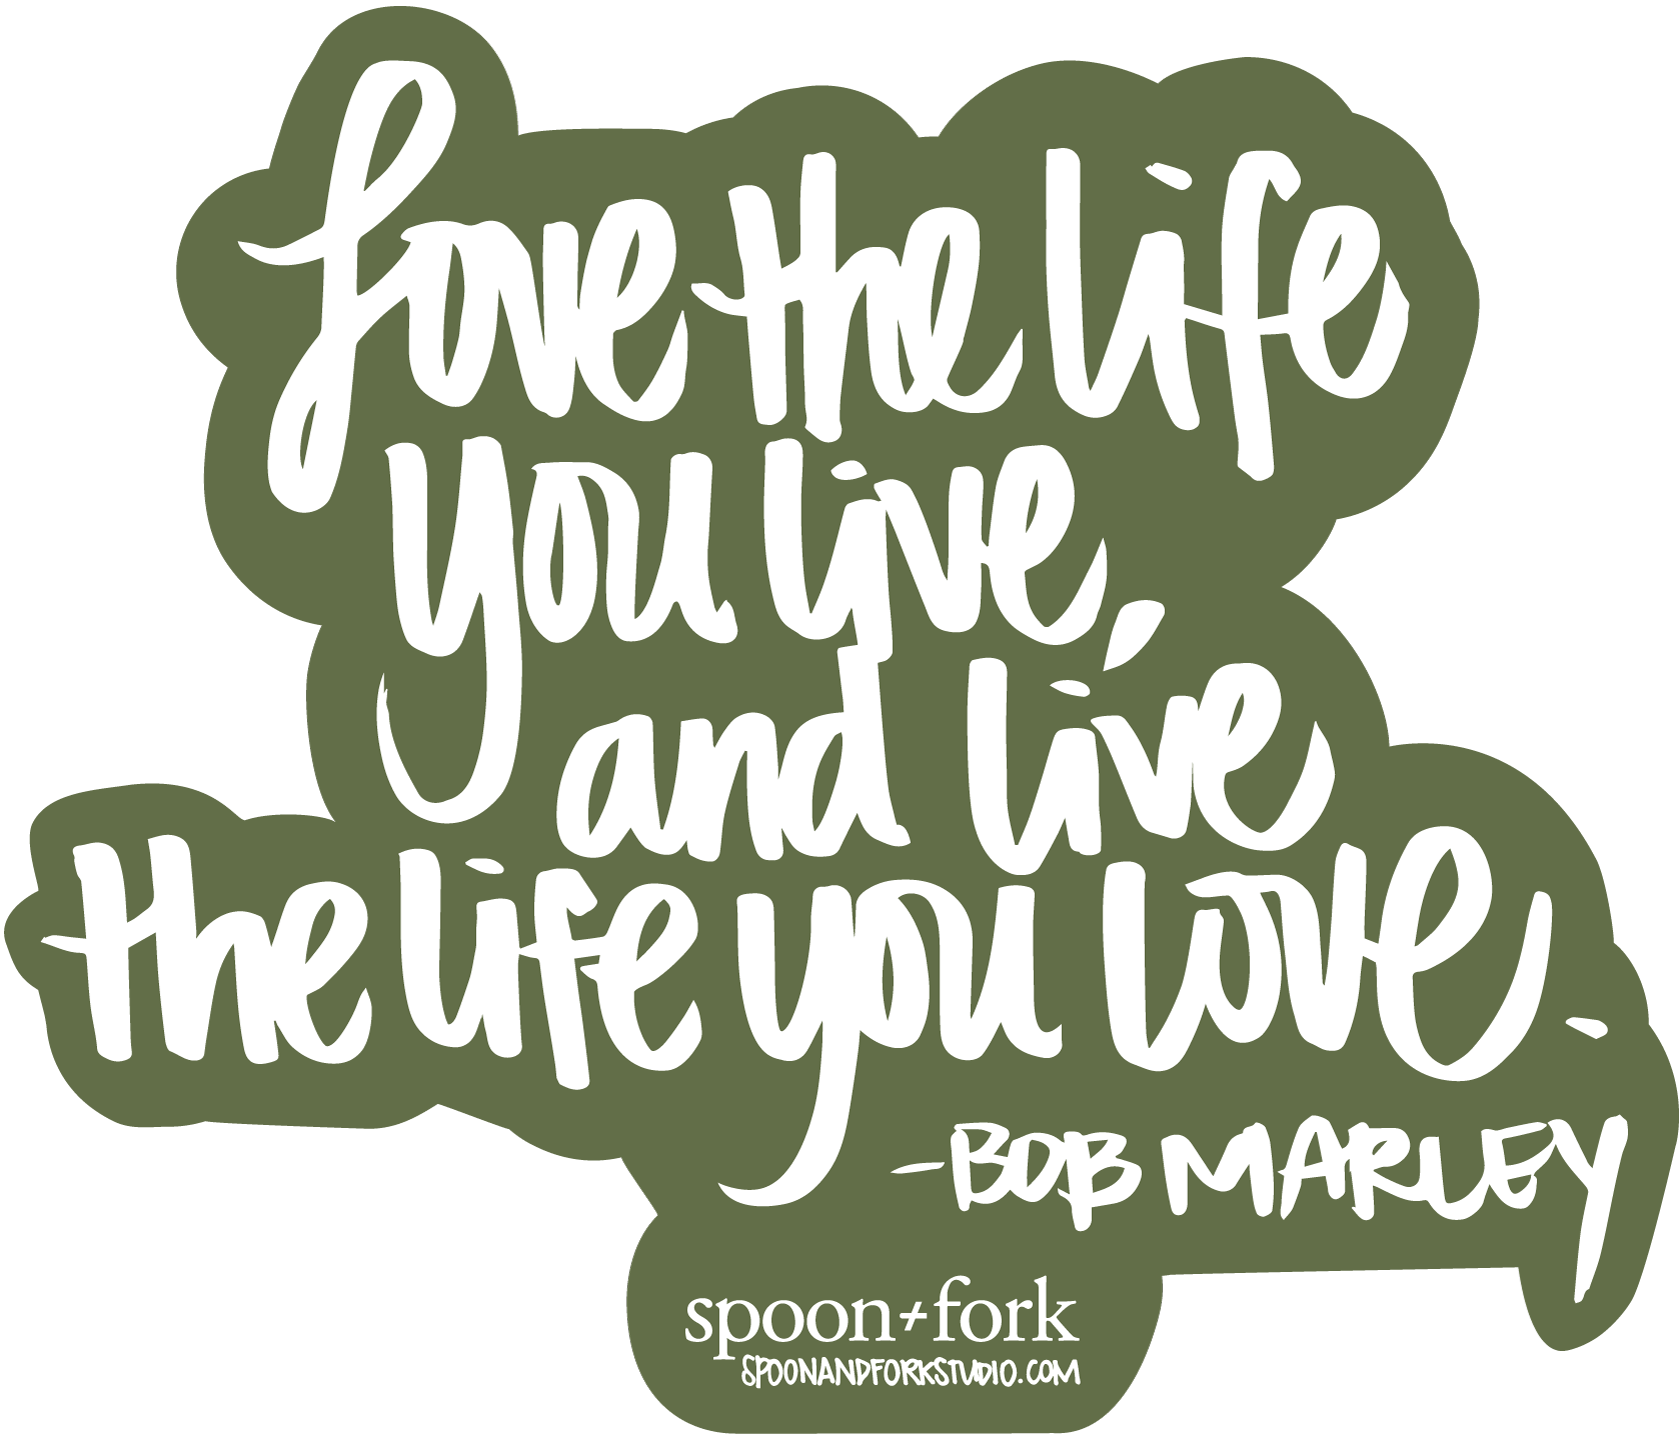 sf_2017holiday_bobmarley_olive_112717-website.png